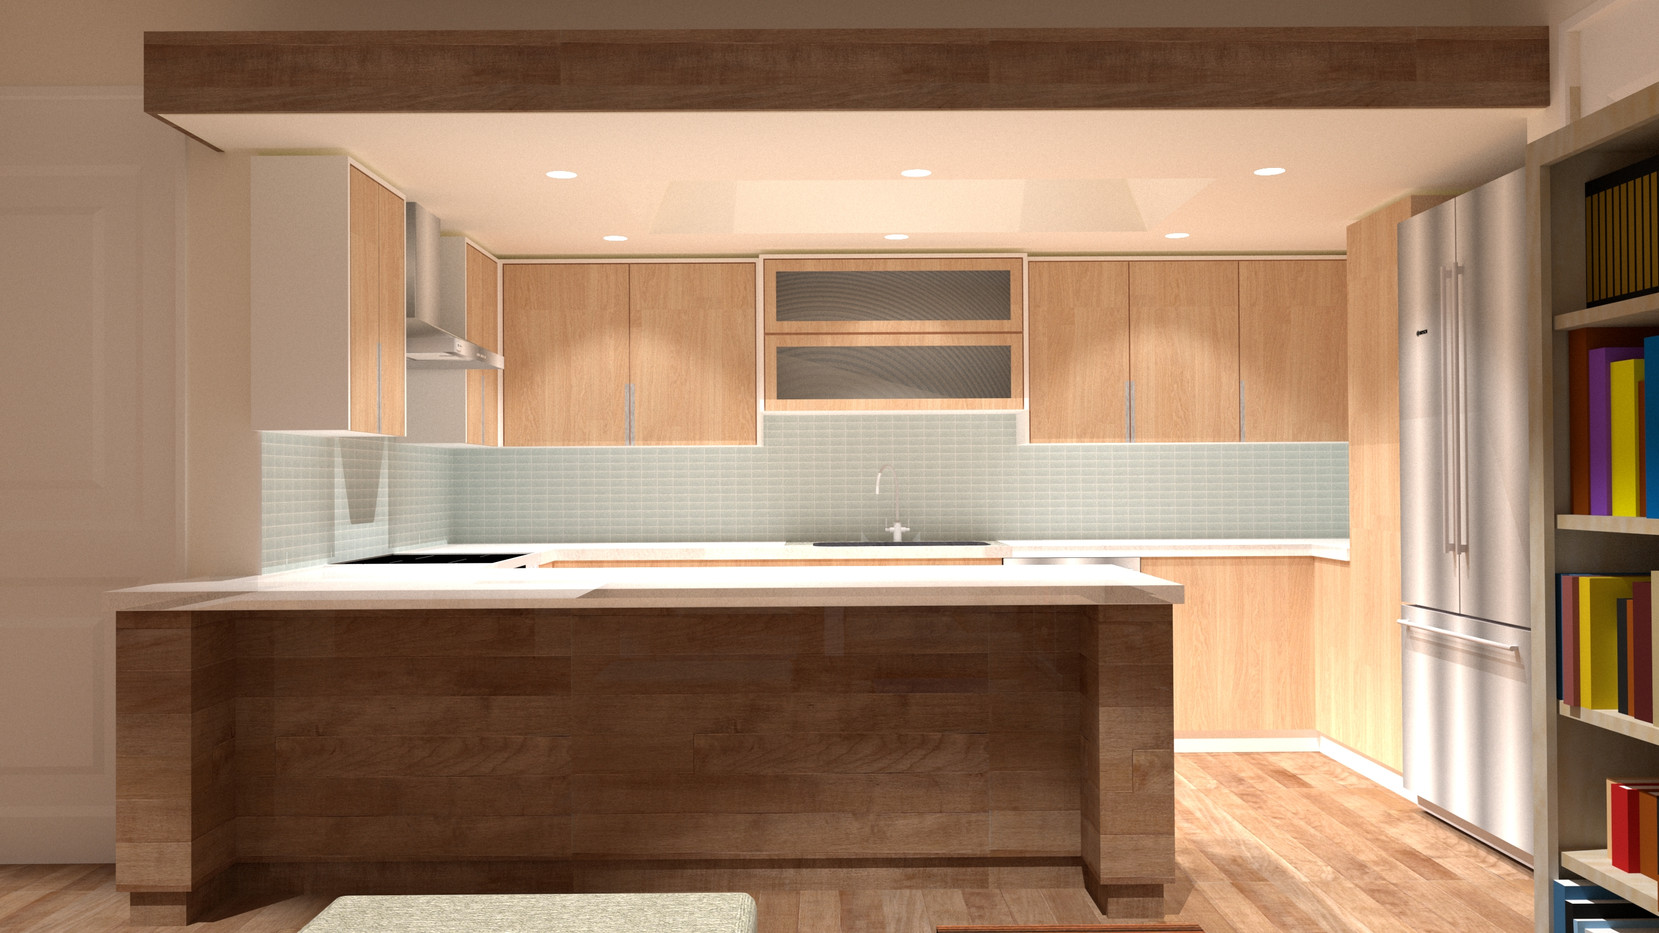 KITCHEN CABINET DESIGN.jpg